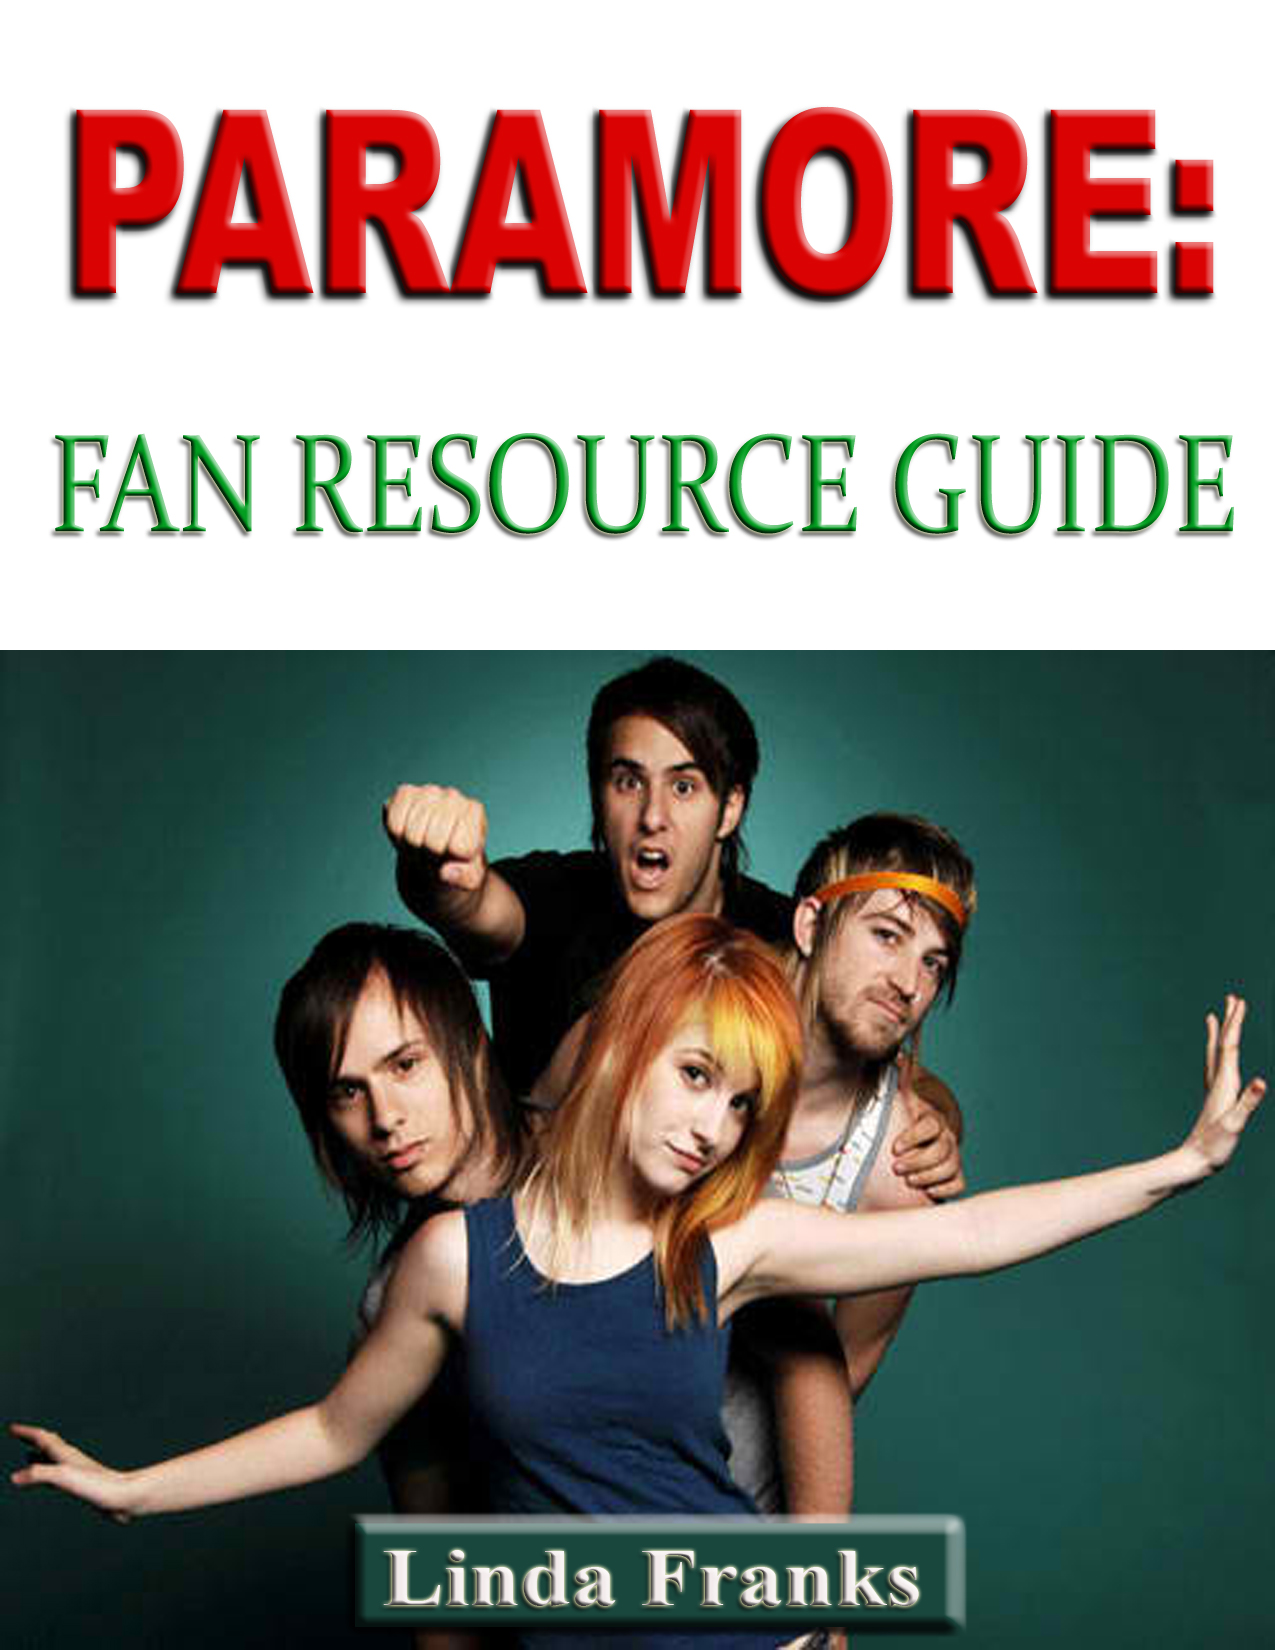 Linda Franks - Paramore: Fan Resource Guide